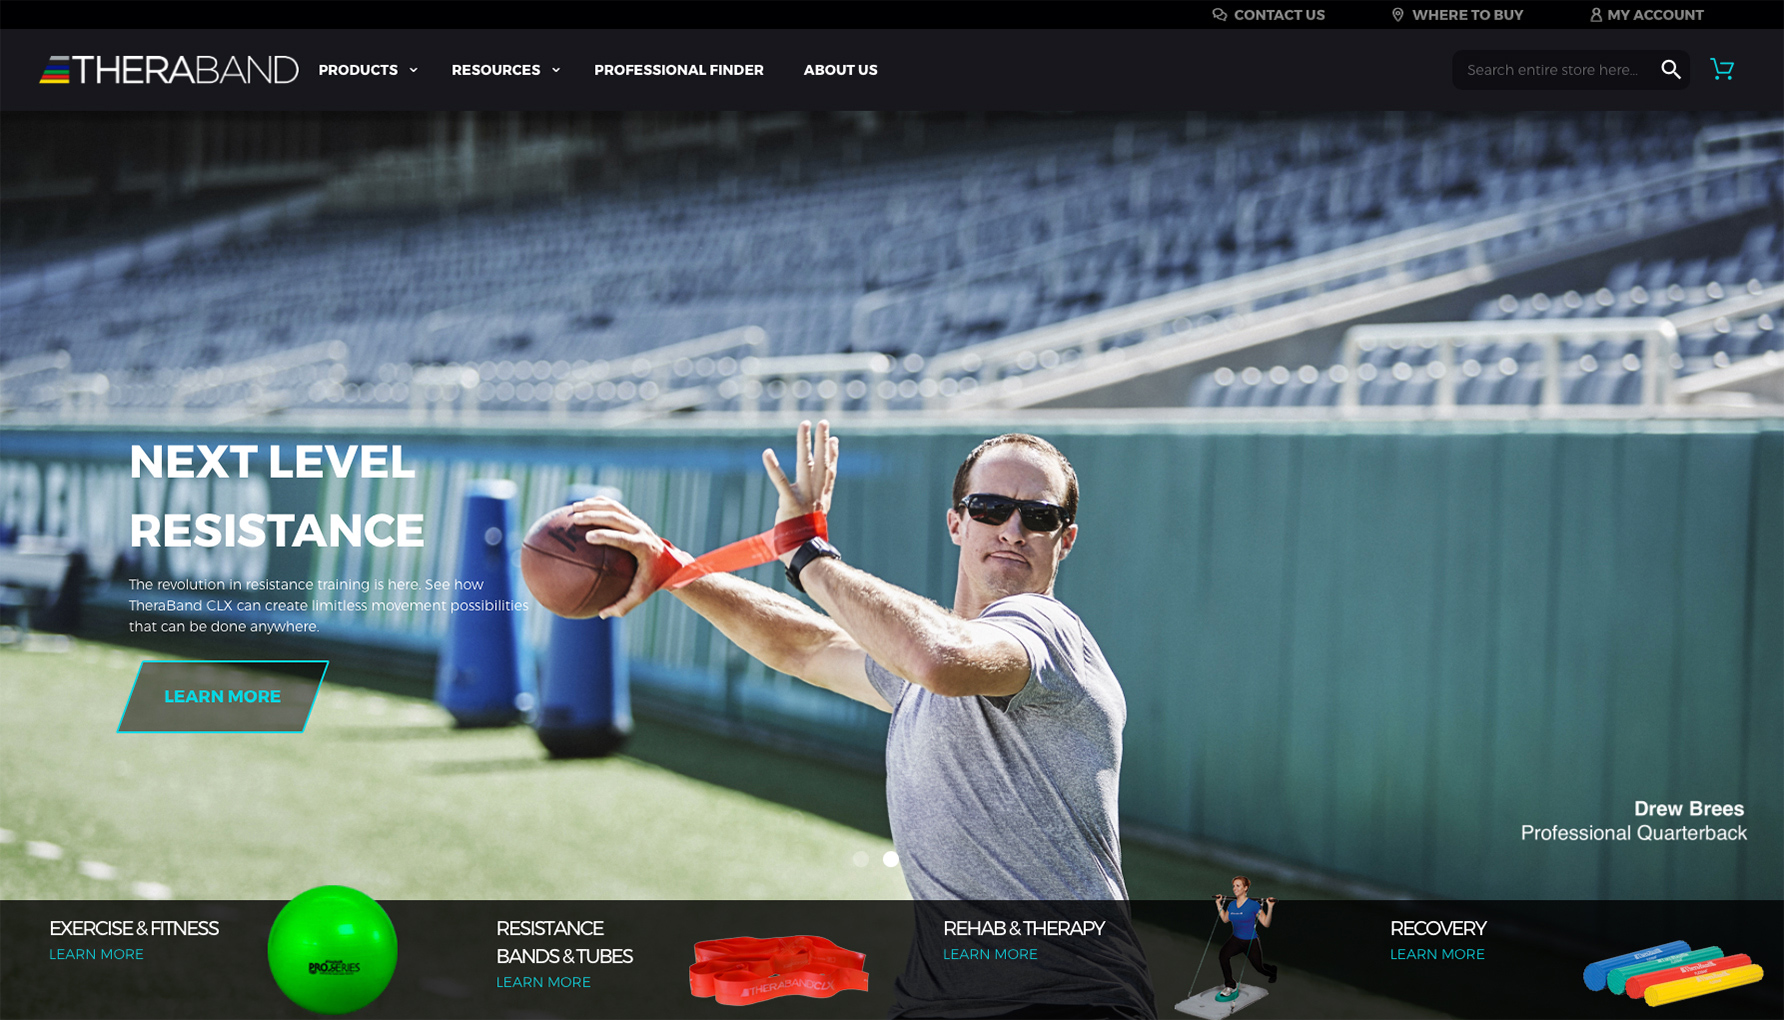 Sports Photographer STEVE BOYLE - Drew Brees for Theraband